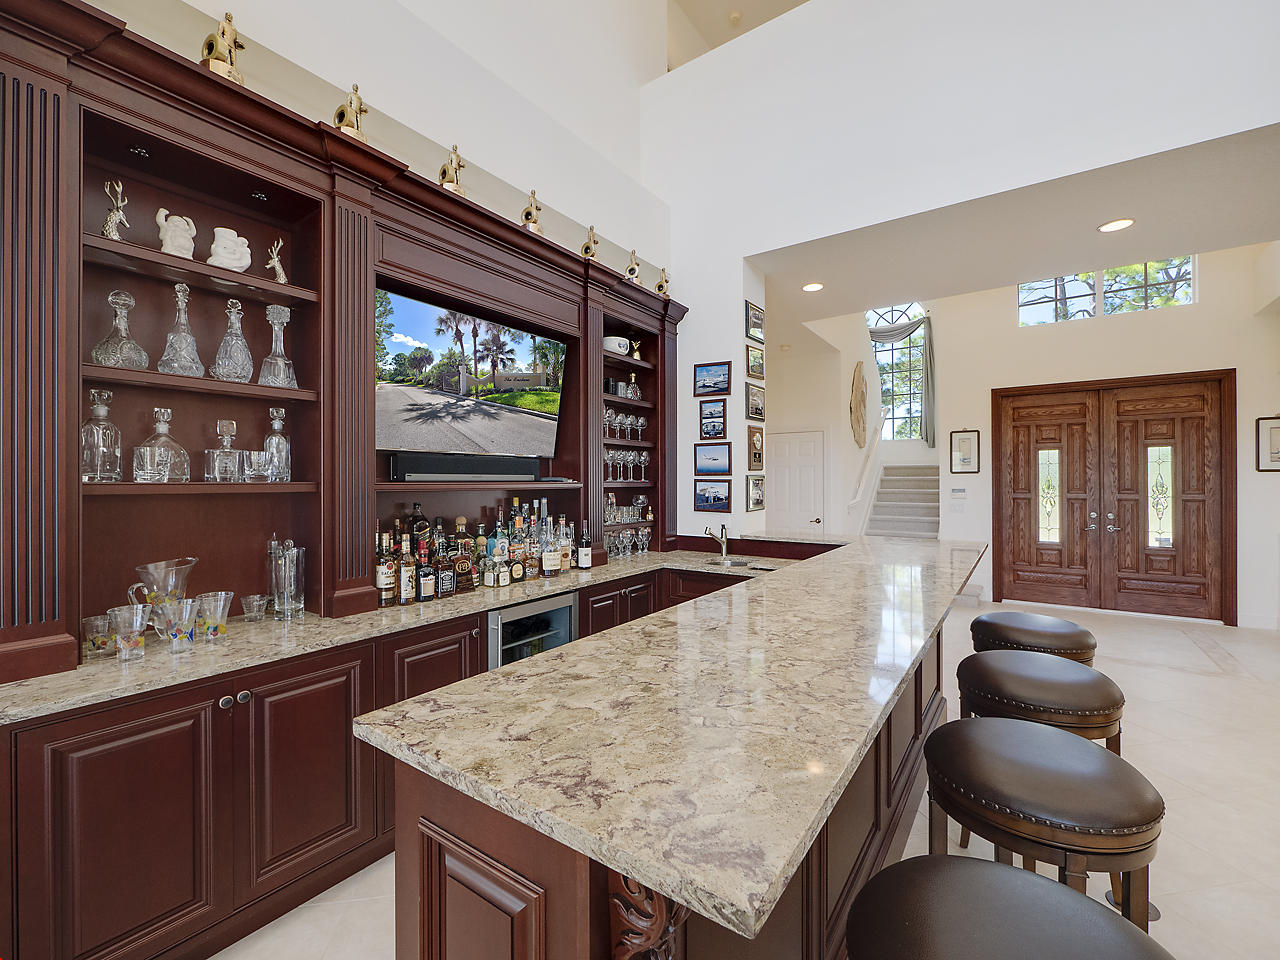 Newly installed bar (2017) featuring Quartz tops, wine/beverage fridge, ice maker and wet sink.  Large heated pool and spa with waterfall feature and a paver deck . The kitchen has center island cooktop, wine rack and double wall ovens. 1st Floor master bedroom has its own sitting room and private access to the pool. Master bath features double vanity, whirlpool tub and separate shower.  The den features beautiful built in cabinets/desk and Murphy bed for those unexpected overnight guests. One separate bedroom upstairs off the kitchen and laundry area, 2 bed/2 bath (ensuite) upstairs on the other side. Bonus rm with upper terrace access. Bridge open to the parlor/bar. 3 new A/C & new W/D 2017 ...LOW HOA $176/mo.  Call your bank and get pre-qualified and call me today before its too late!